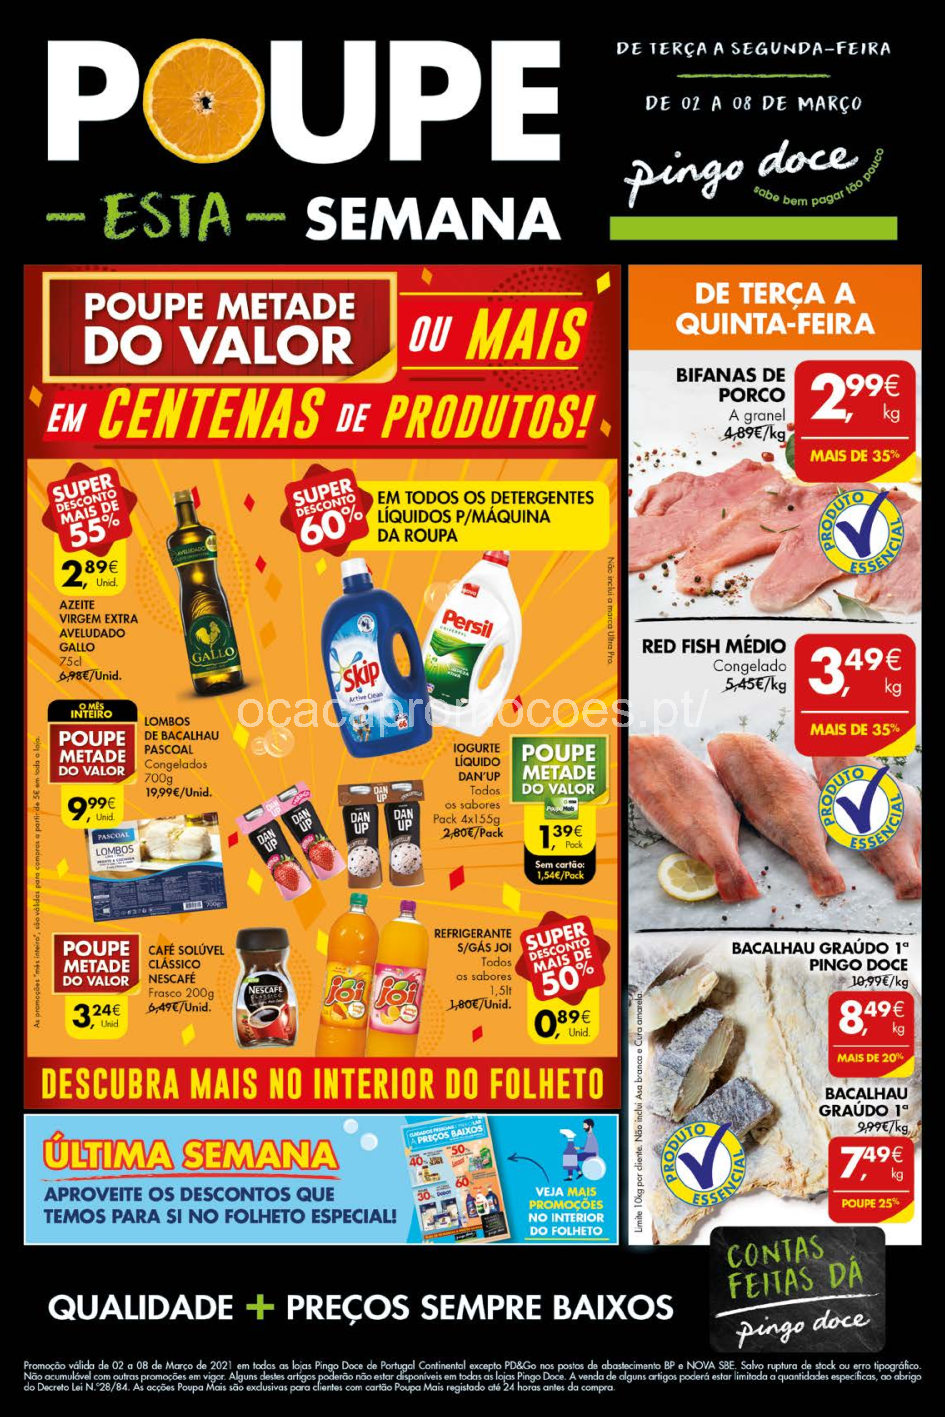 folheto pingo doce 2 8 marco grandes promocoes Page1 1